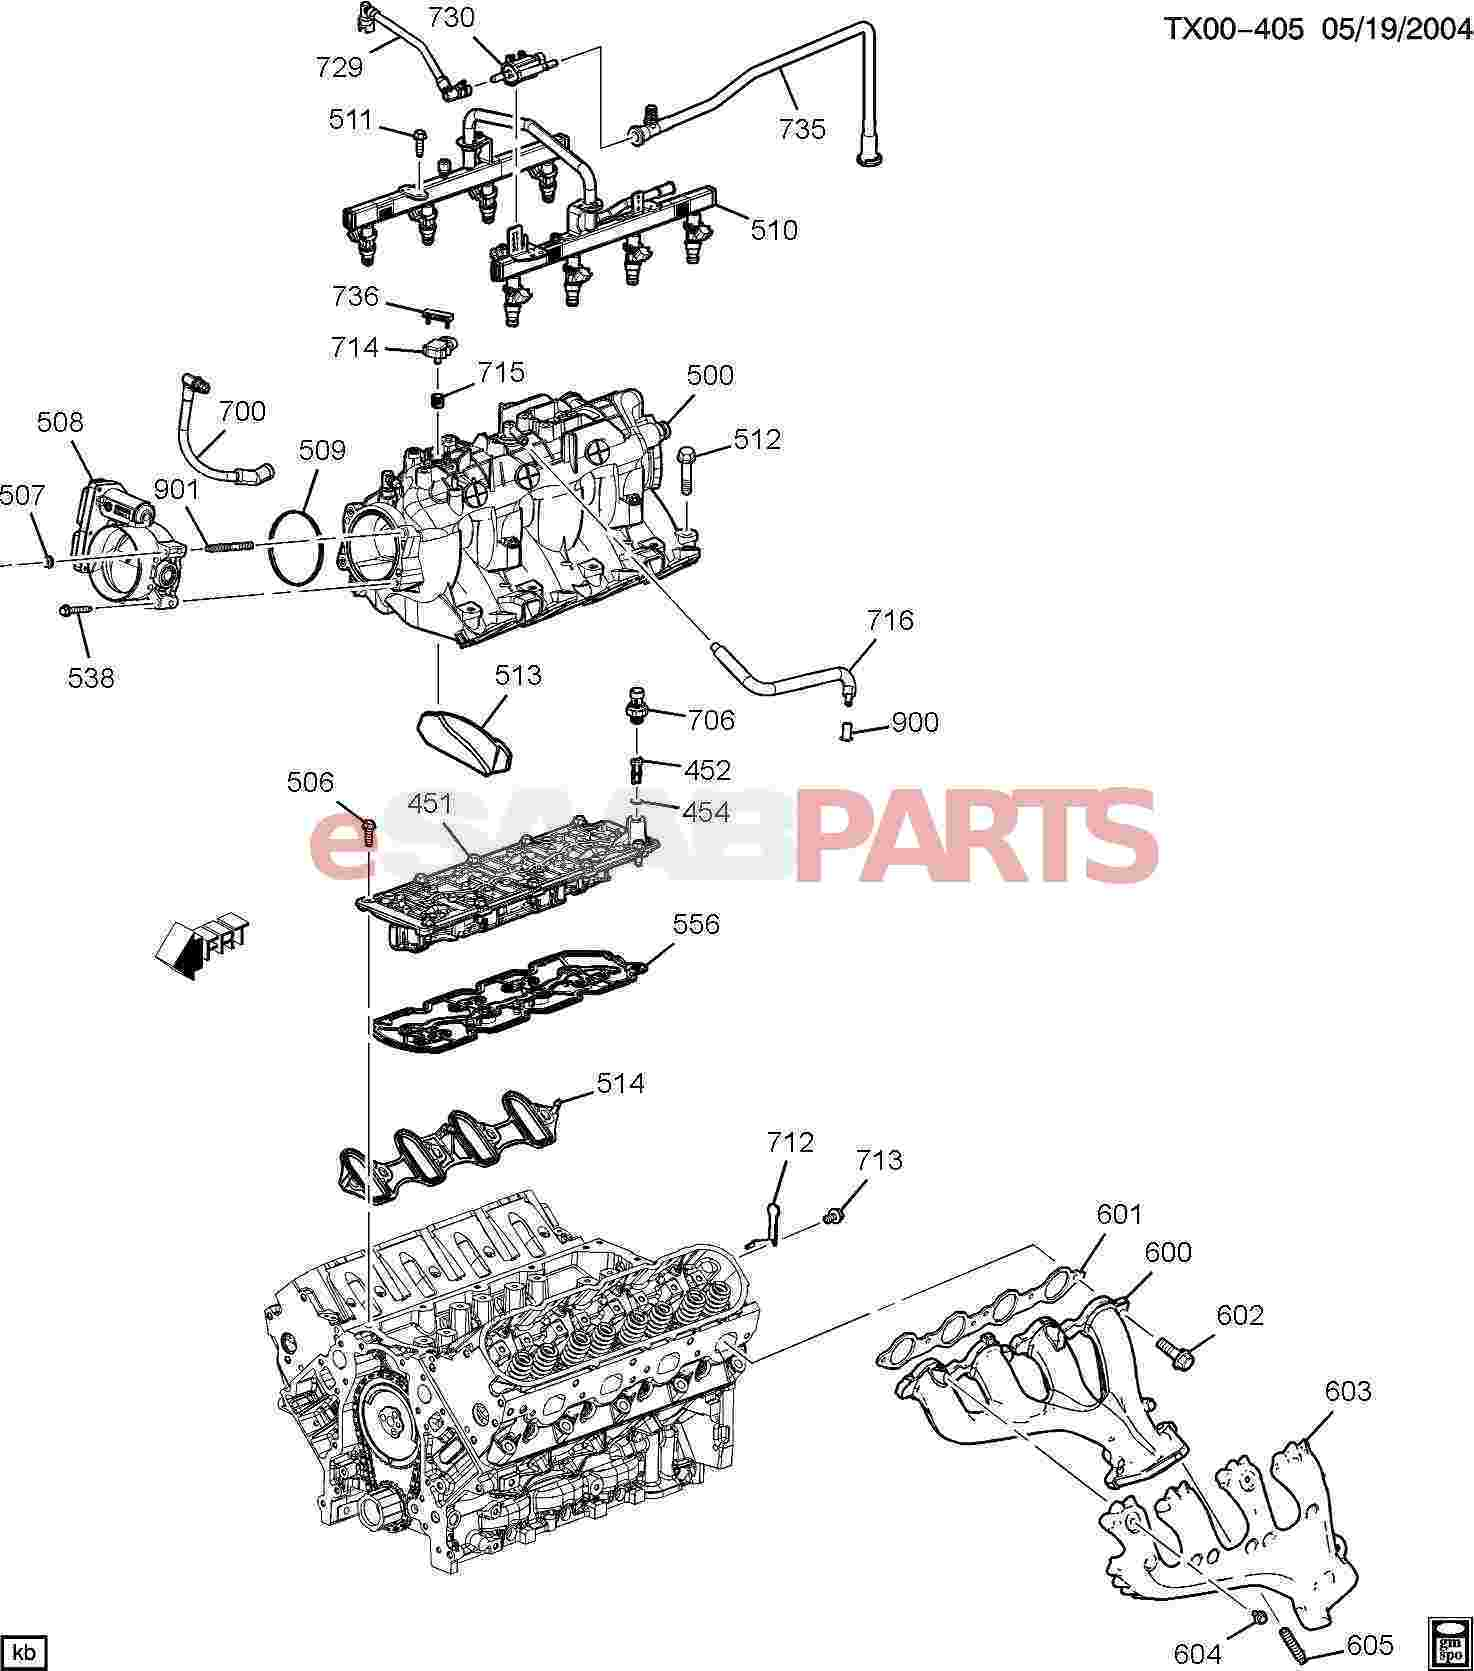 5 3 Chevy Engine Internal Diagram Schematics Wiring Diagrams Gm Ls9 Coil Esaabparts Com Saab 9 7x U003e Parts 3m Rh 2004 Silverado 1500 Layout 53 Intake